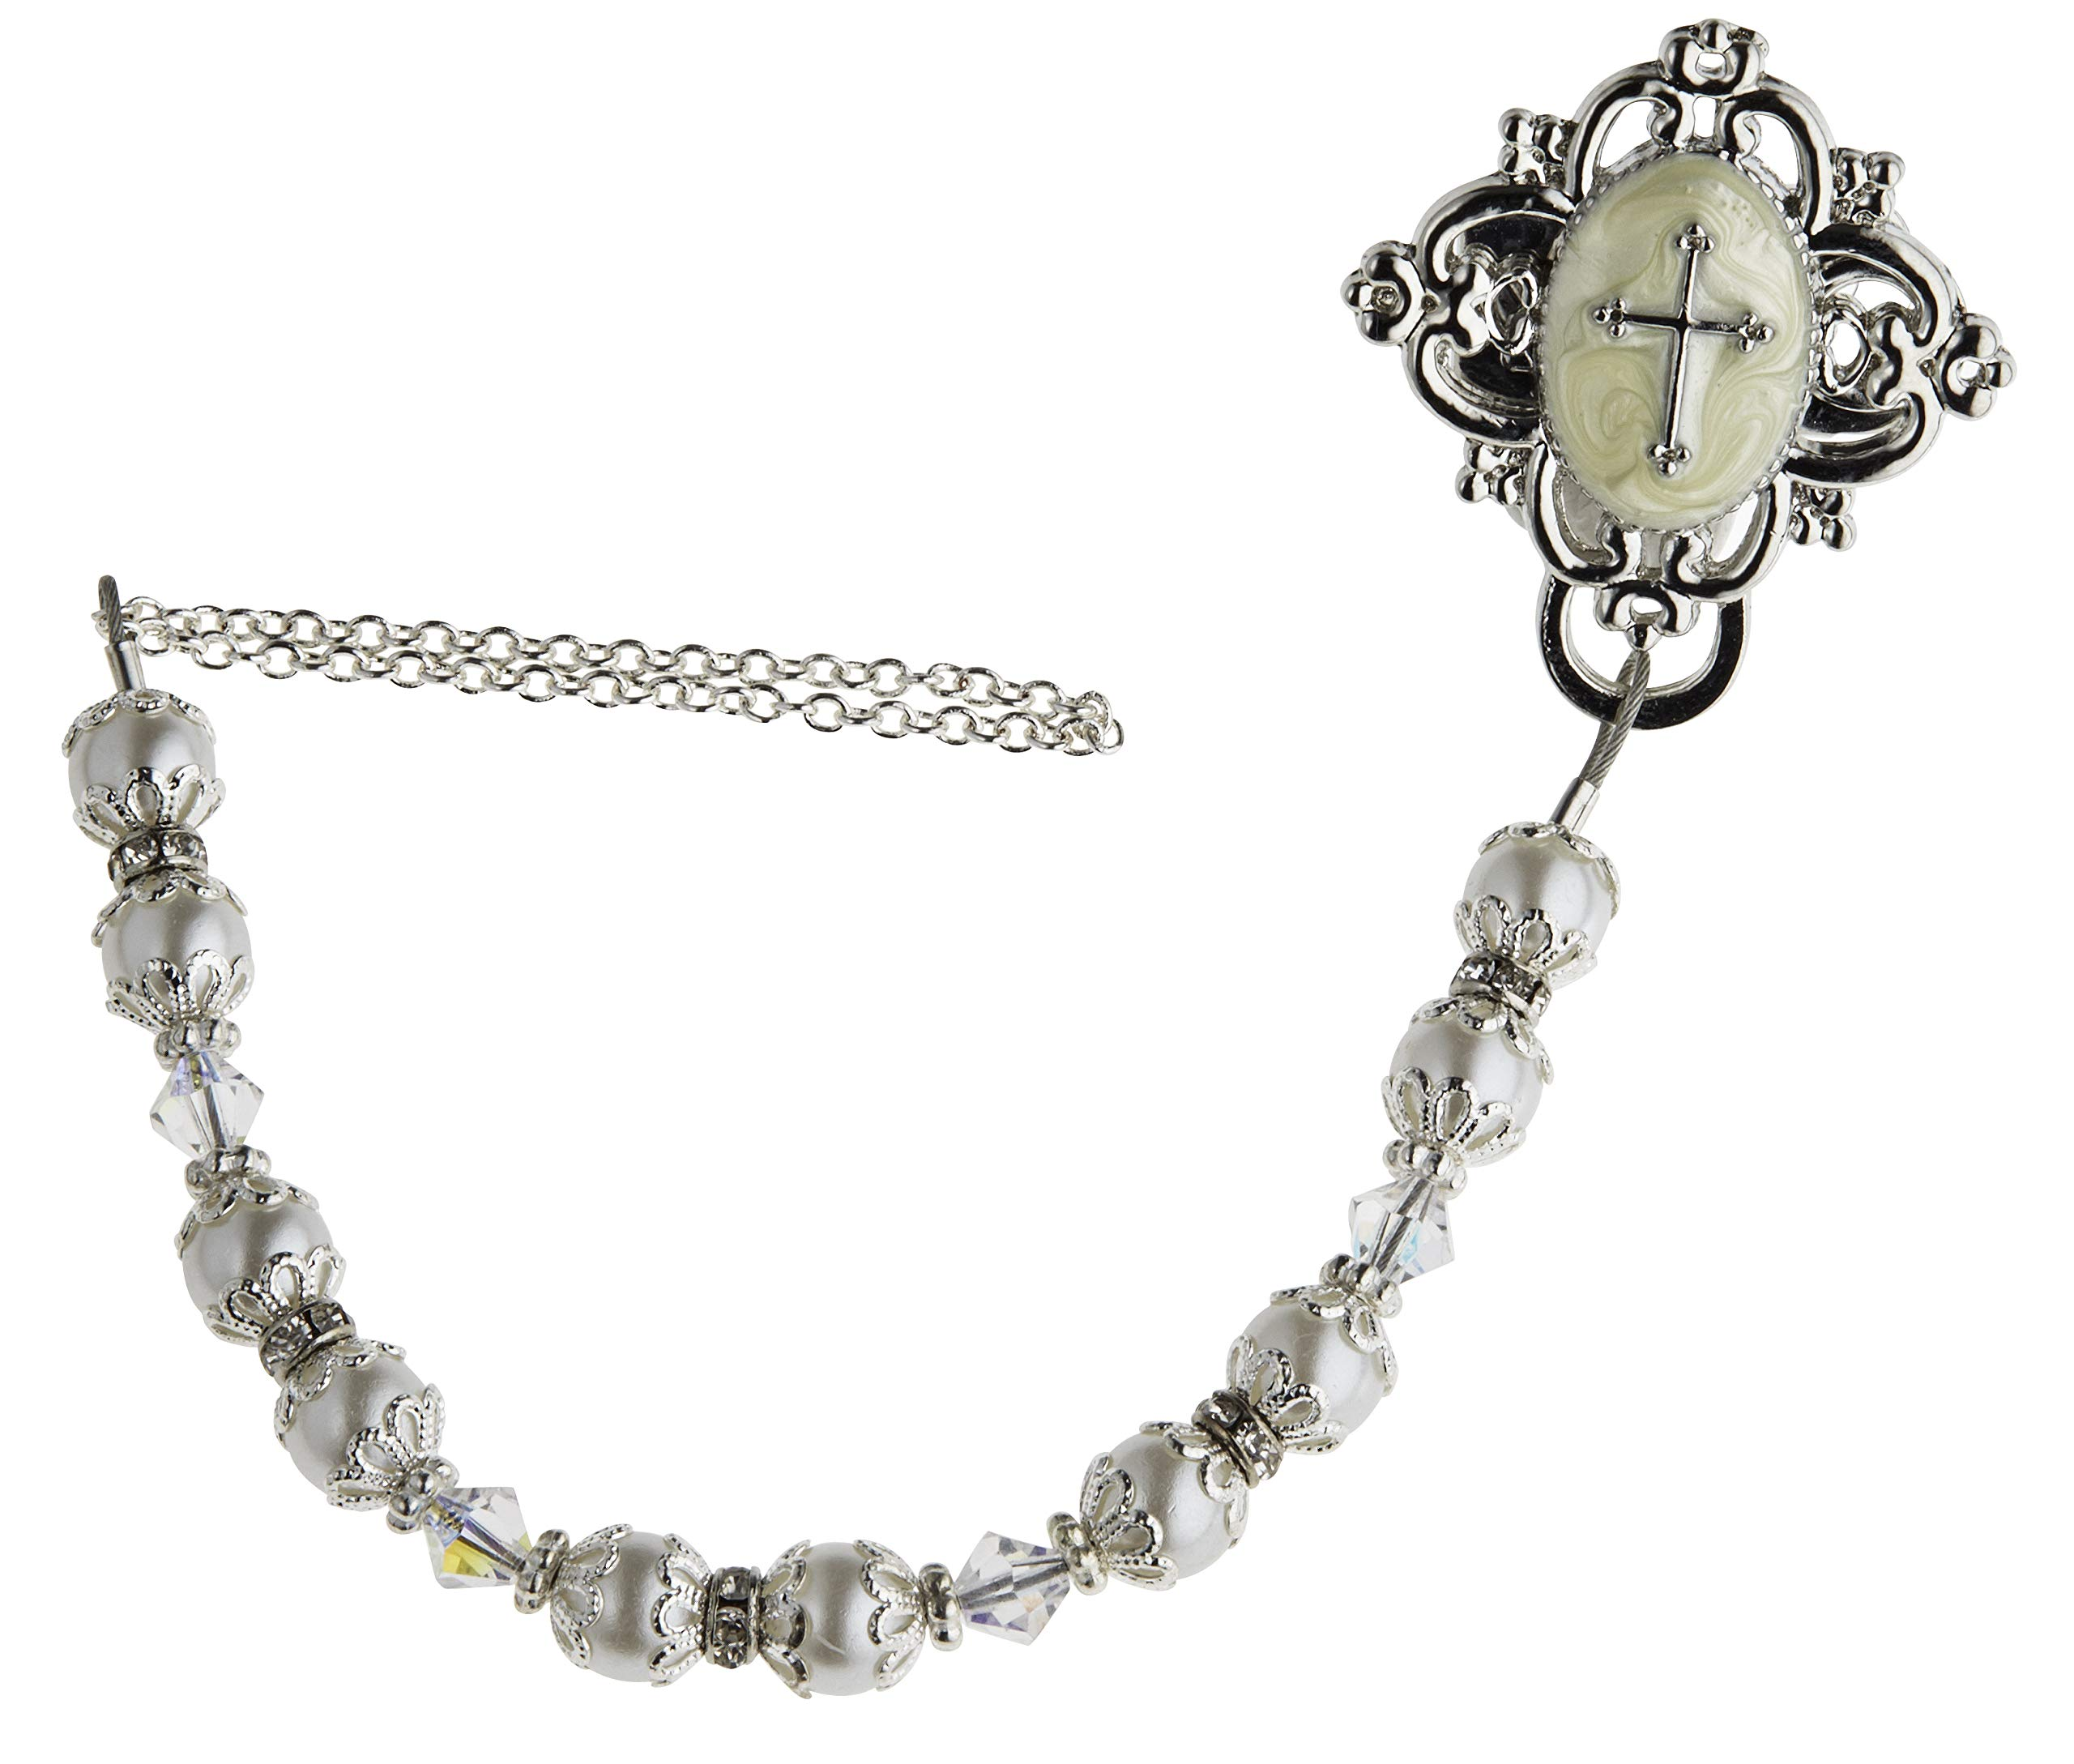 Baptism White Swarovski Simulated Pearls Clear Crystals Rhodium Plated Silver Hand Enamelled Baby Christening Gift Pacifier Clip (CCRS) by Tooter